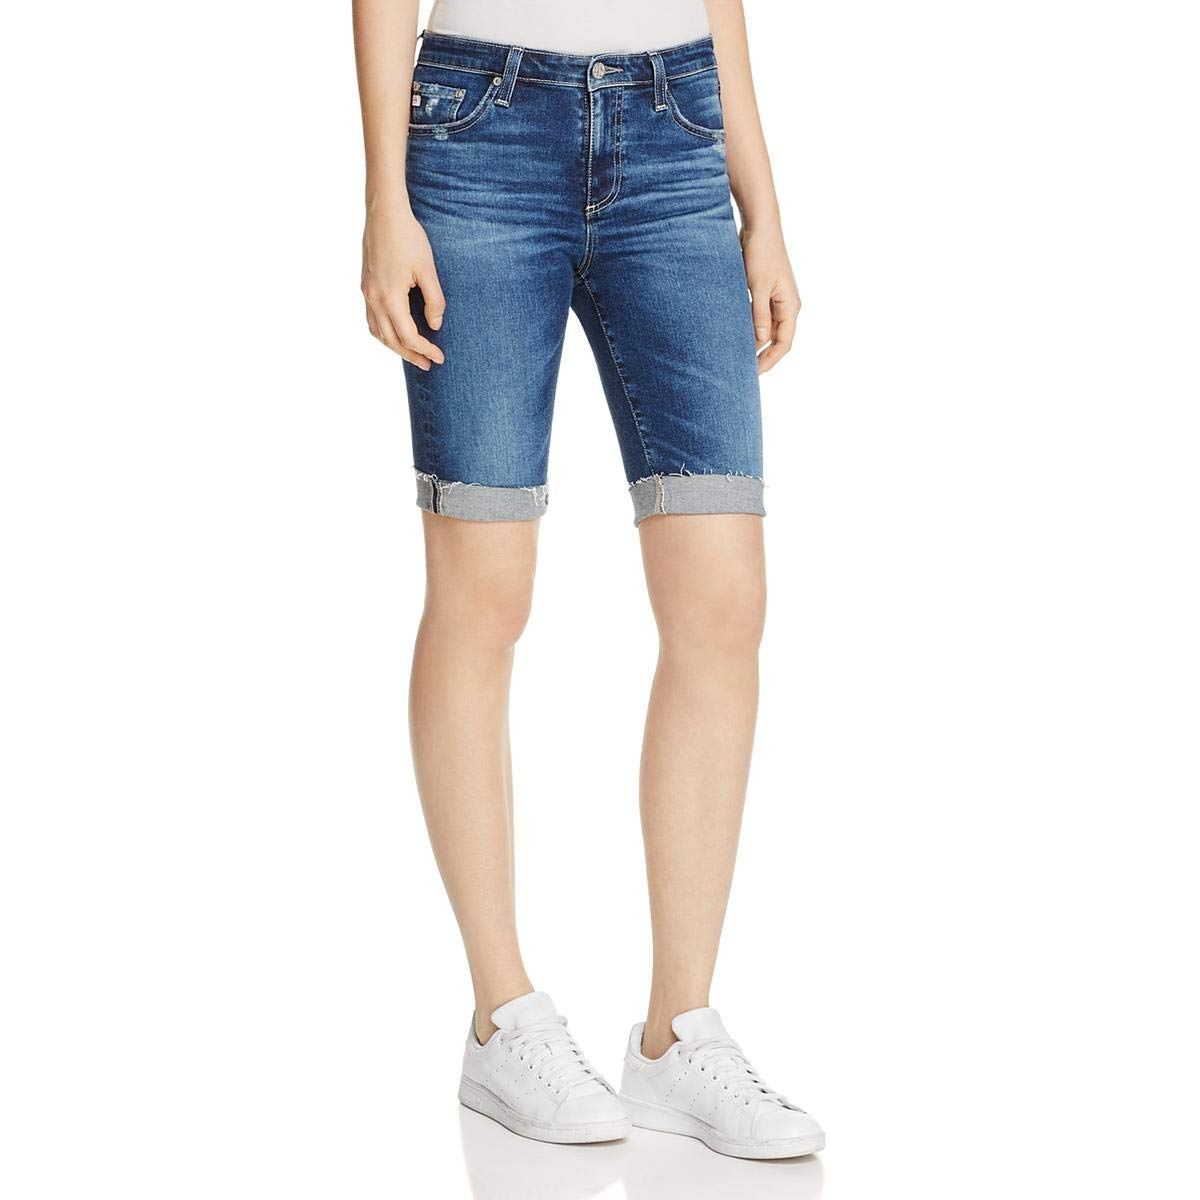 AG Adriano Goldschmied Women's Brooke Bermuda Jean Short, Years Ablaze, 26